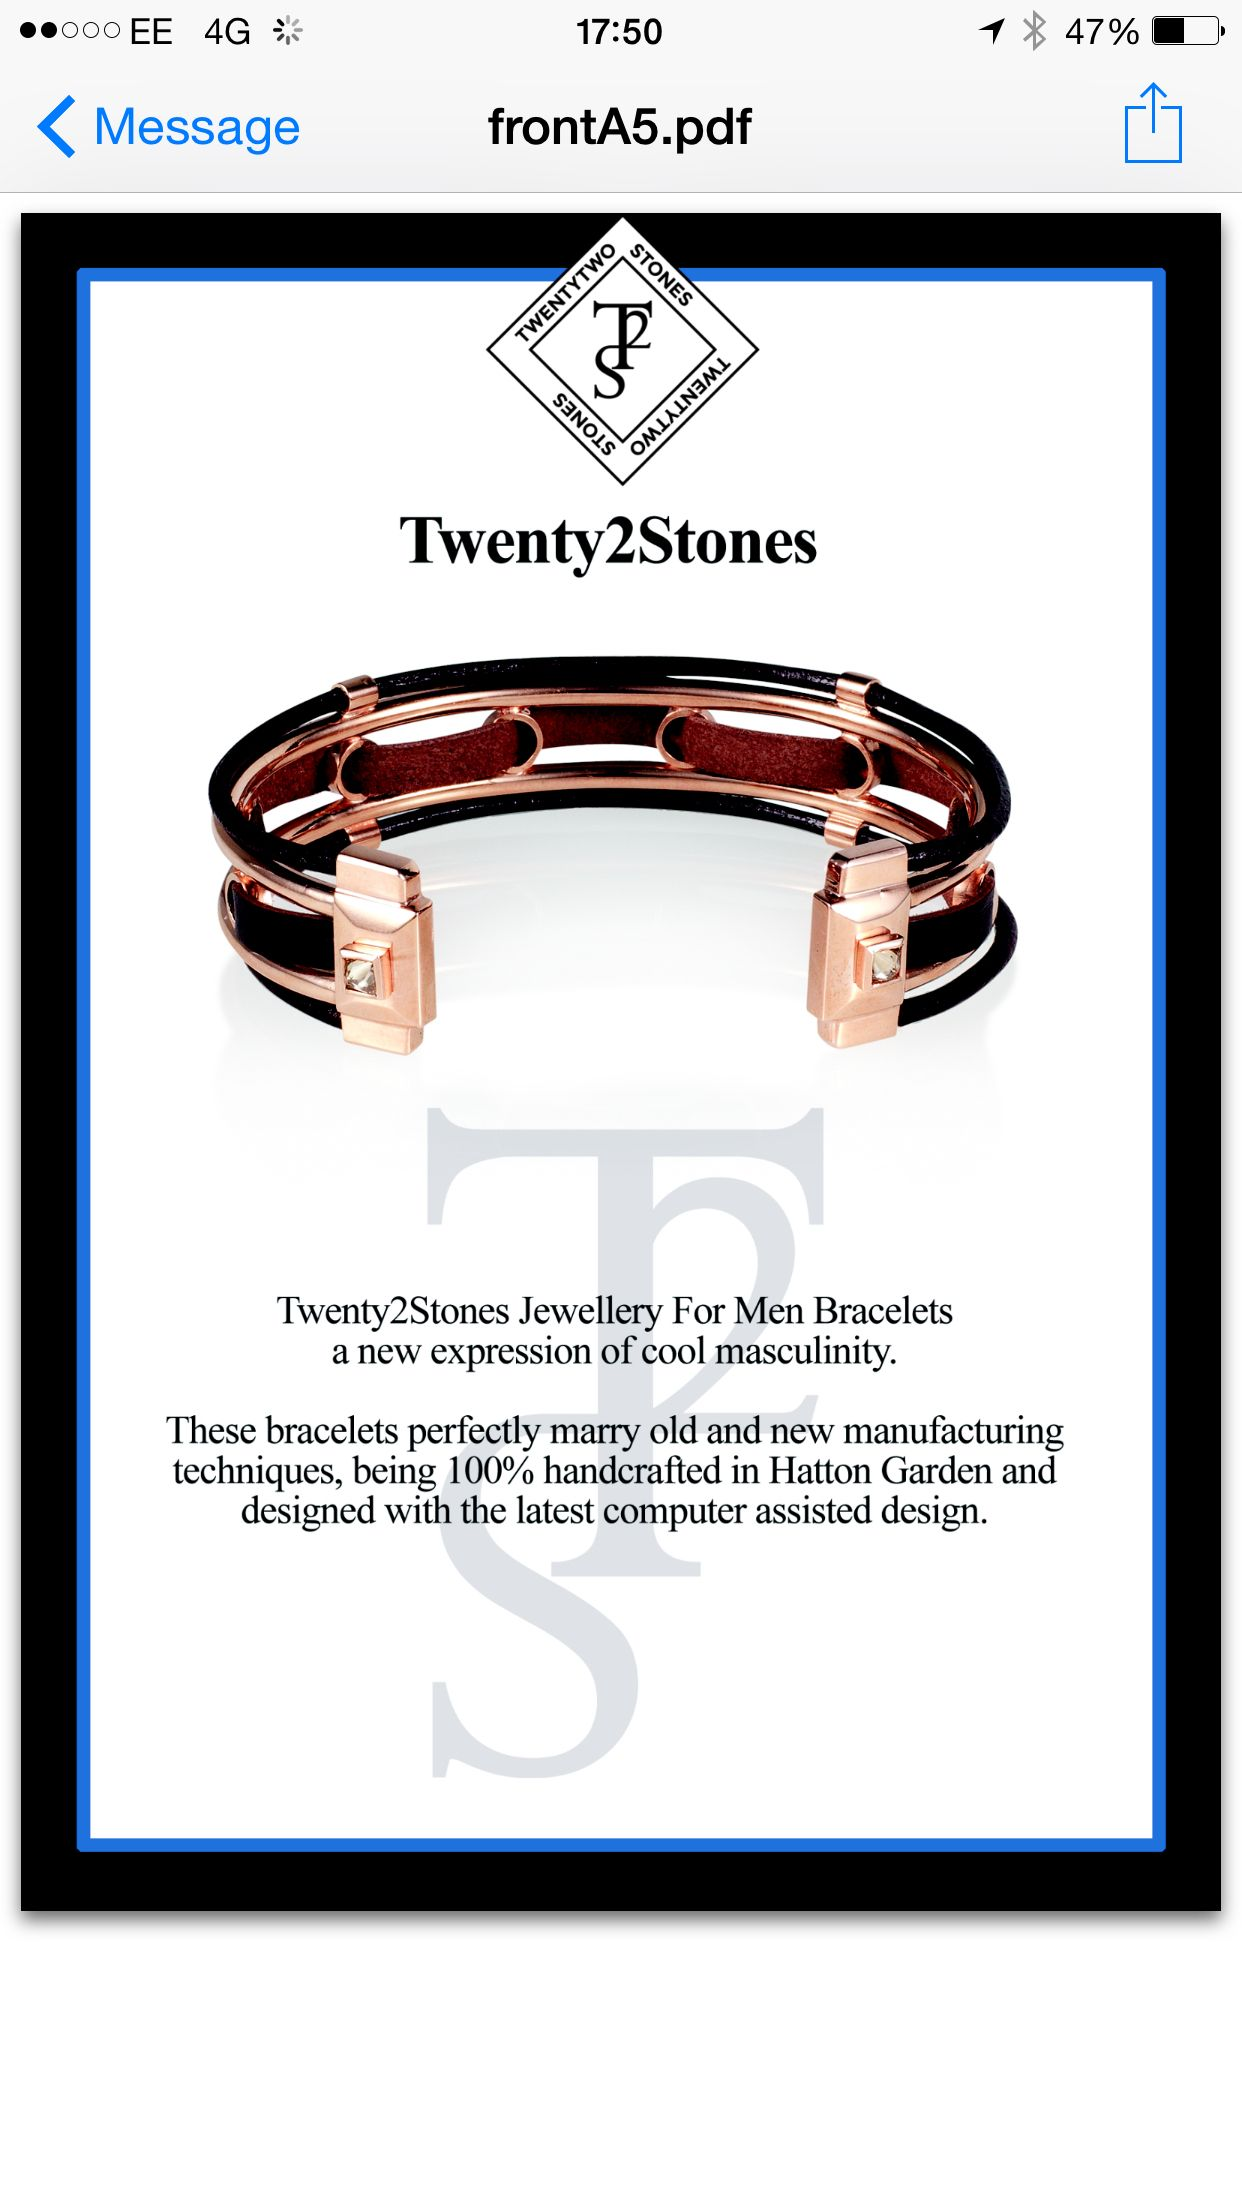 Twenty2 Stones men's bracelet nominated for fashion accessory of the year.